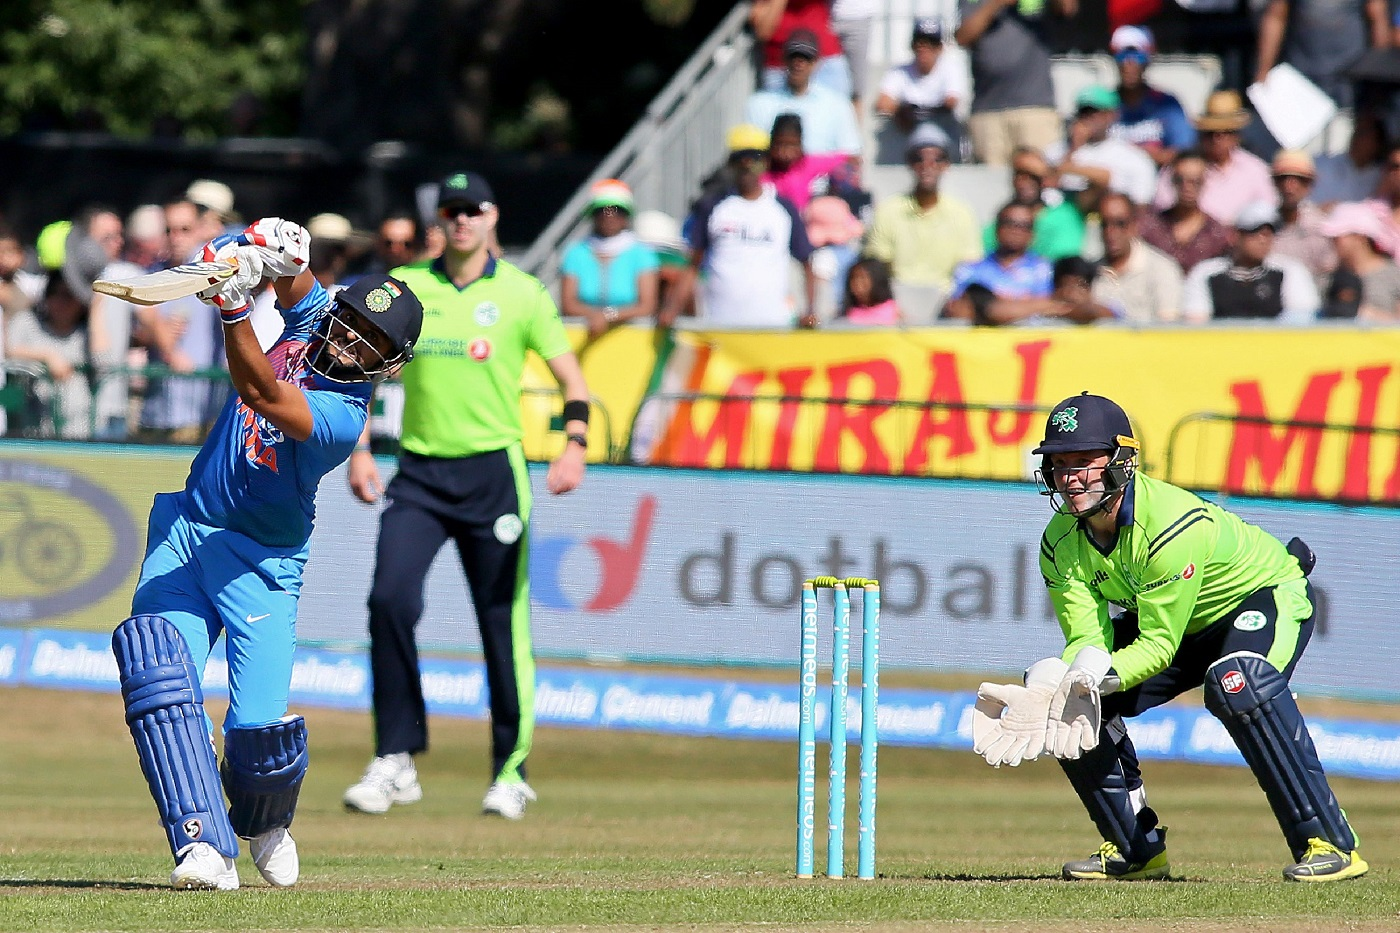 Ireland vs India 2018, 2nd T20I - India Players' Ratings